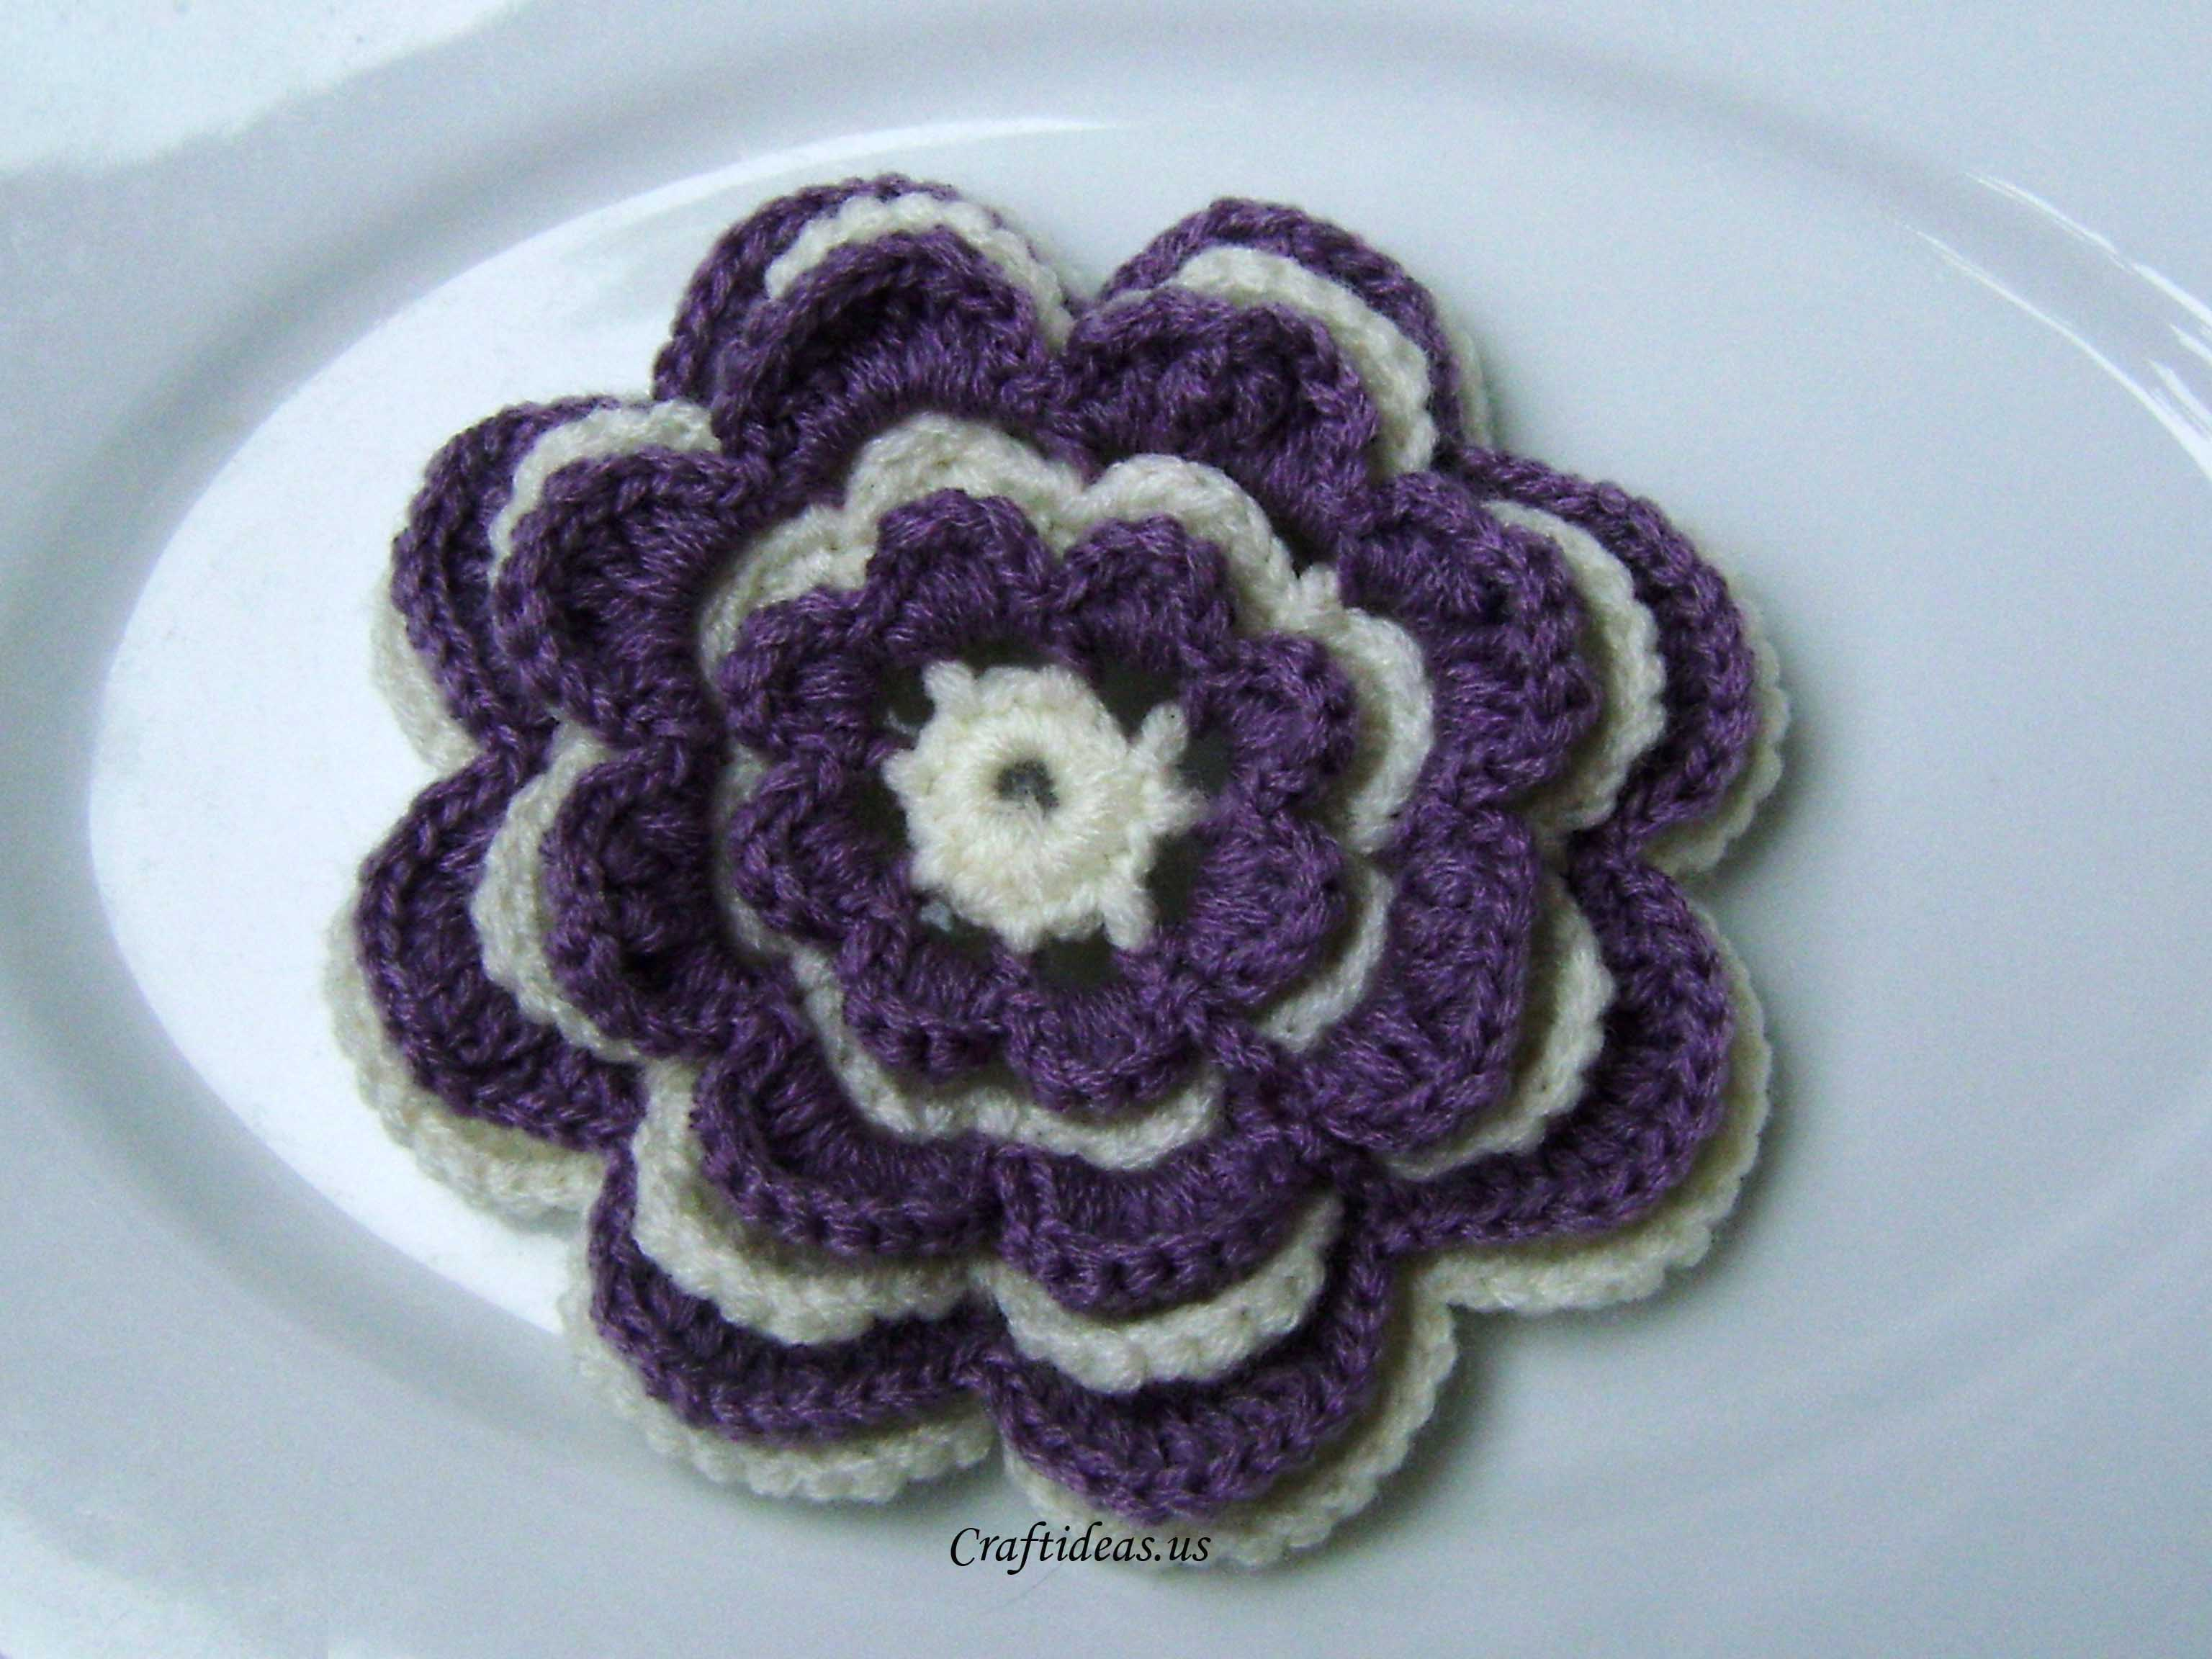 Crochet Patterns Tutorial : Crochet flower tutorial - Craft Ideas